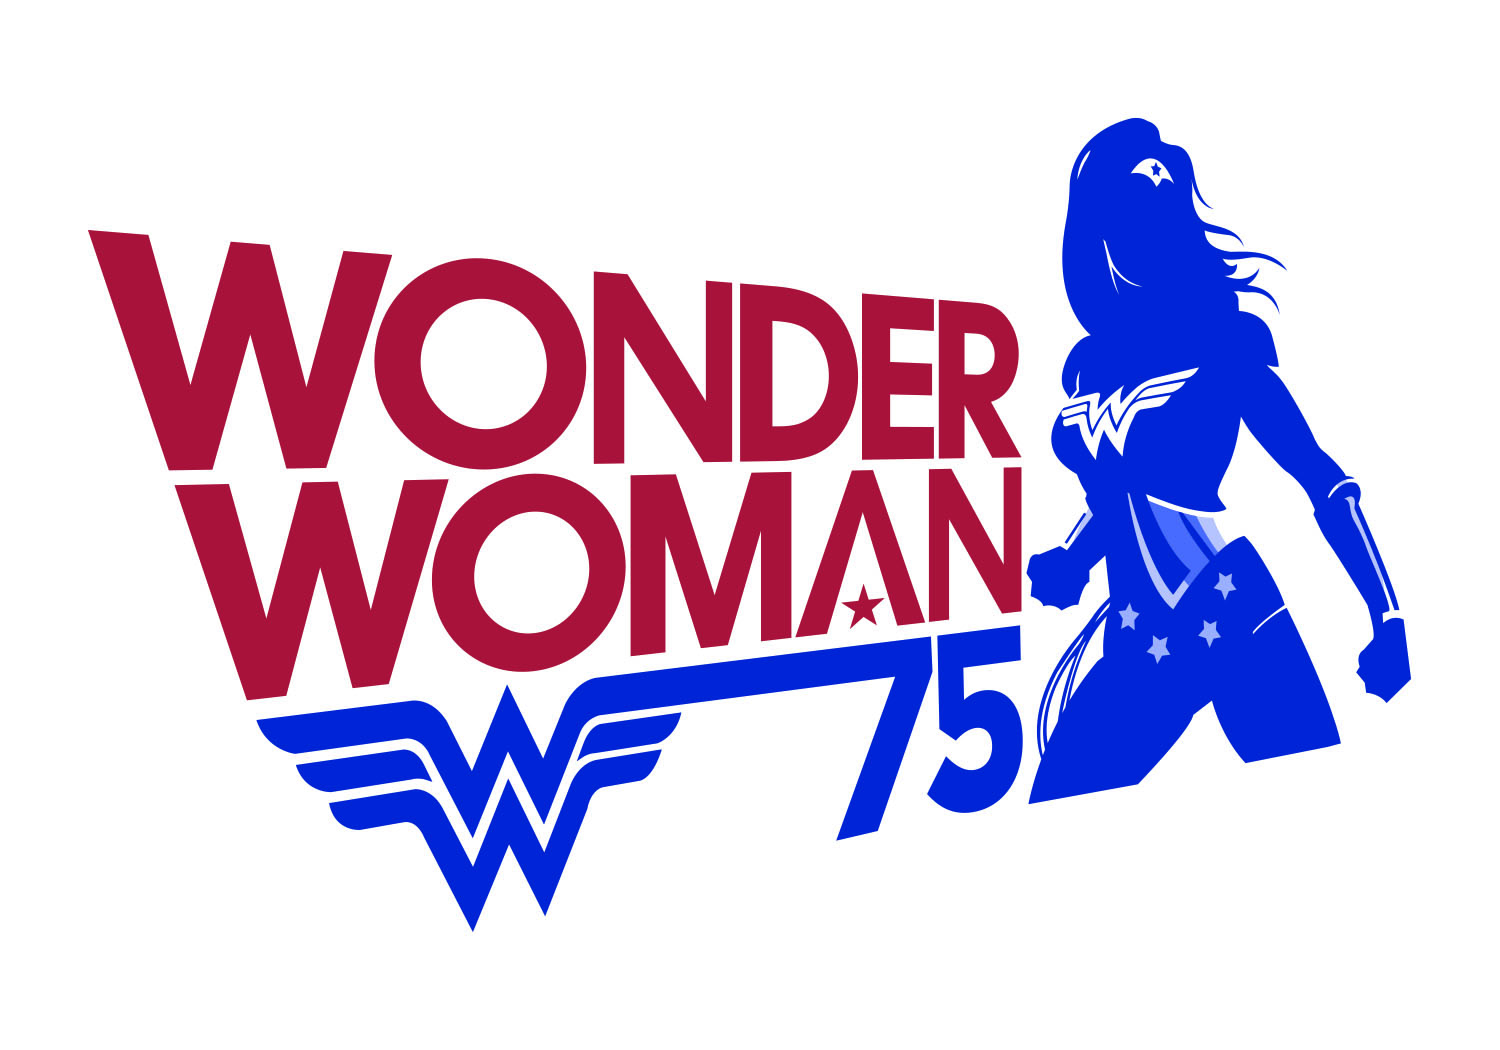 Female empowerment symbols images symbol and sign ideas wonder woman to be named un honorary ambassador the mary sue buycottarizona images biocorpaavc Images